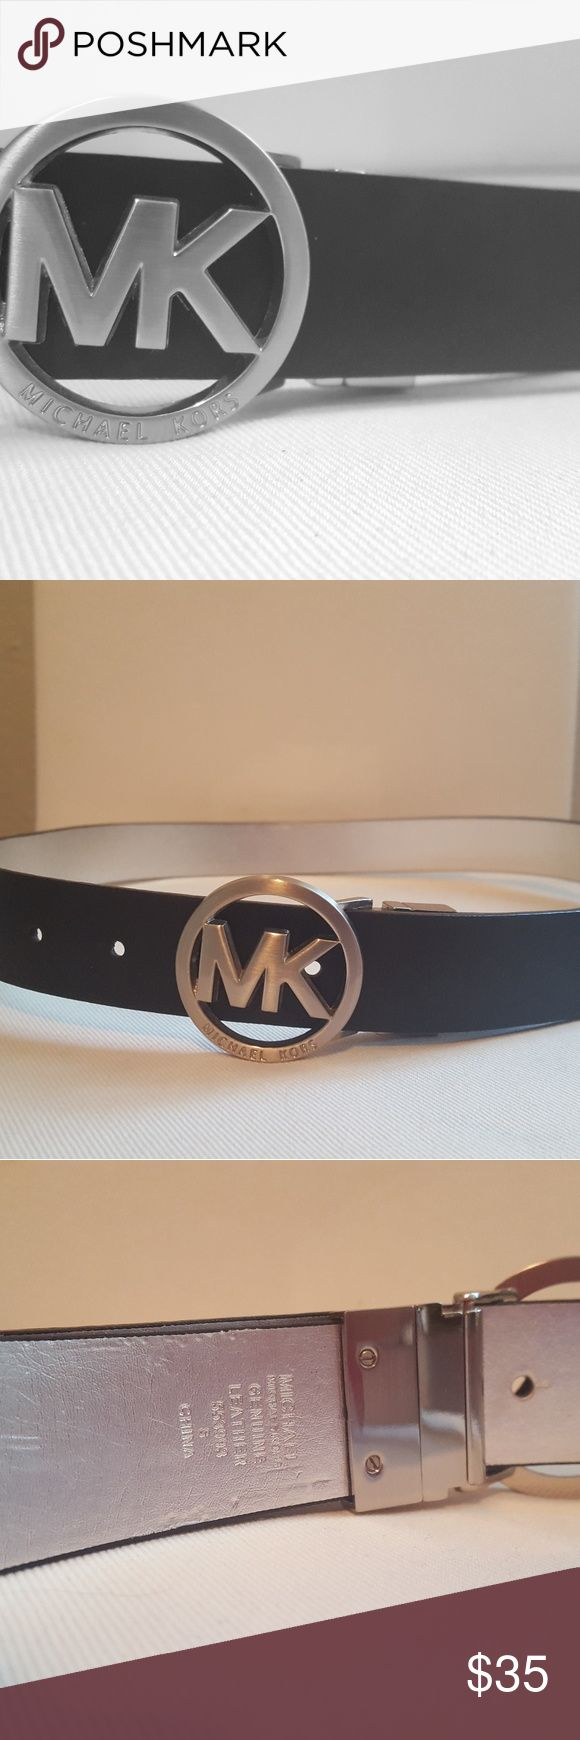 Michael Kors Logo Belt (Reversible) Classic black leather belt with Signature MK Logo buckle. Reversible hinge feature reveals a shiny silver alternate side. Light wear, most visible on silver side in some areas (see photos). Style has no loophole but usually stays nicely tucked into belt loop when worn. Overall very comfortable and in good condition! Michael Kors Accessories Belts